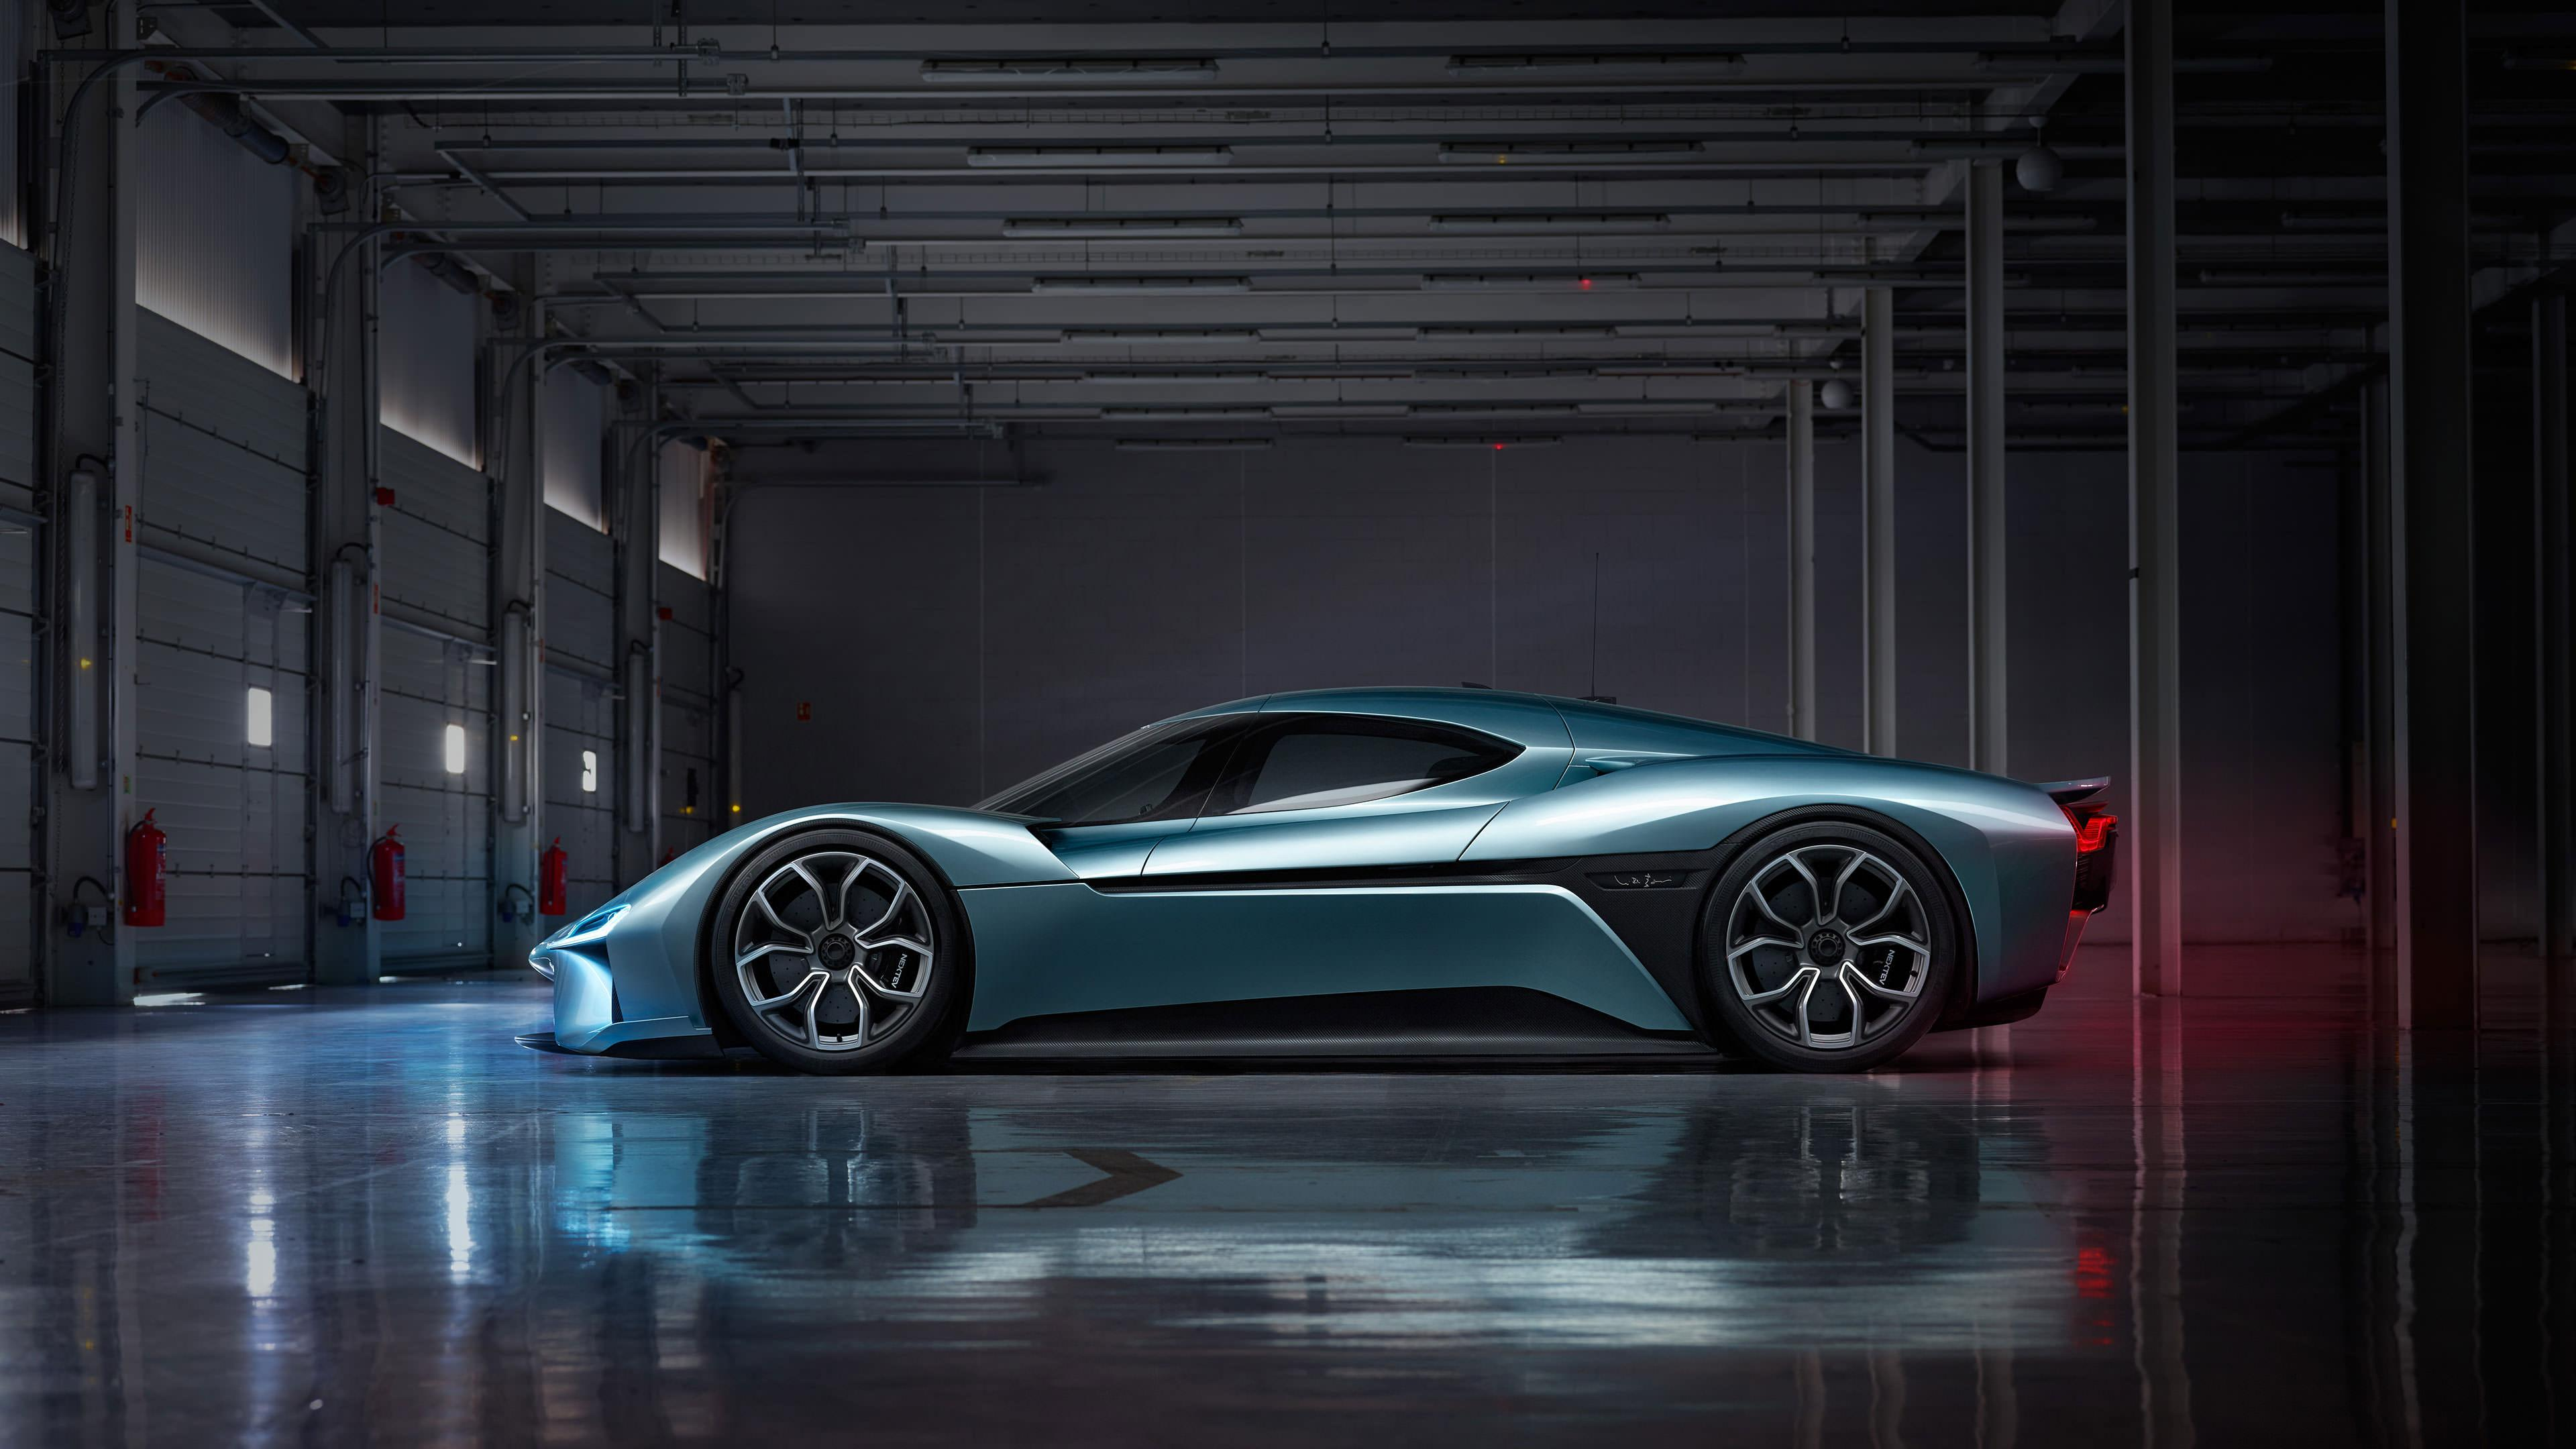 Nio Electric Supercar Wallpaper Hd Car Wallpapers